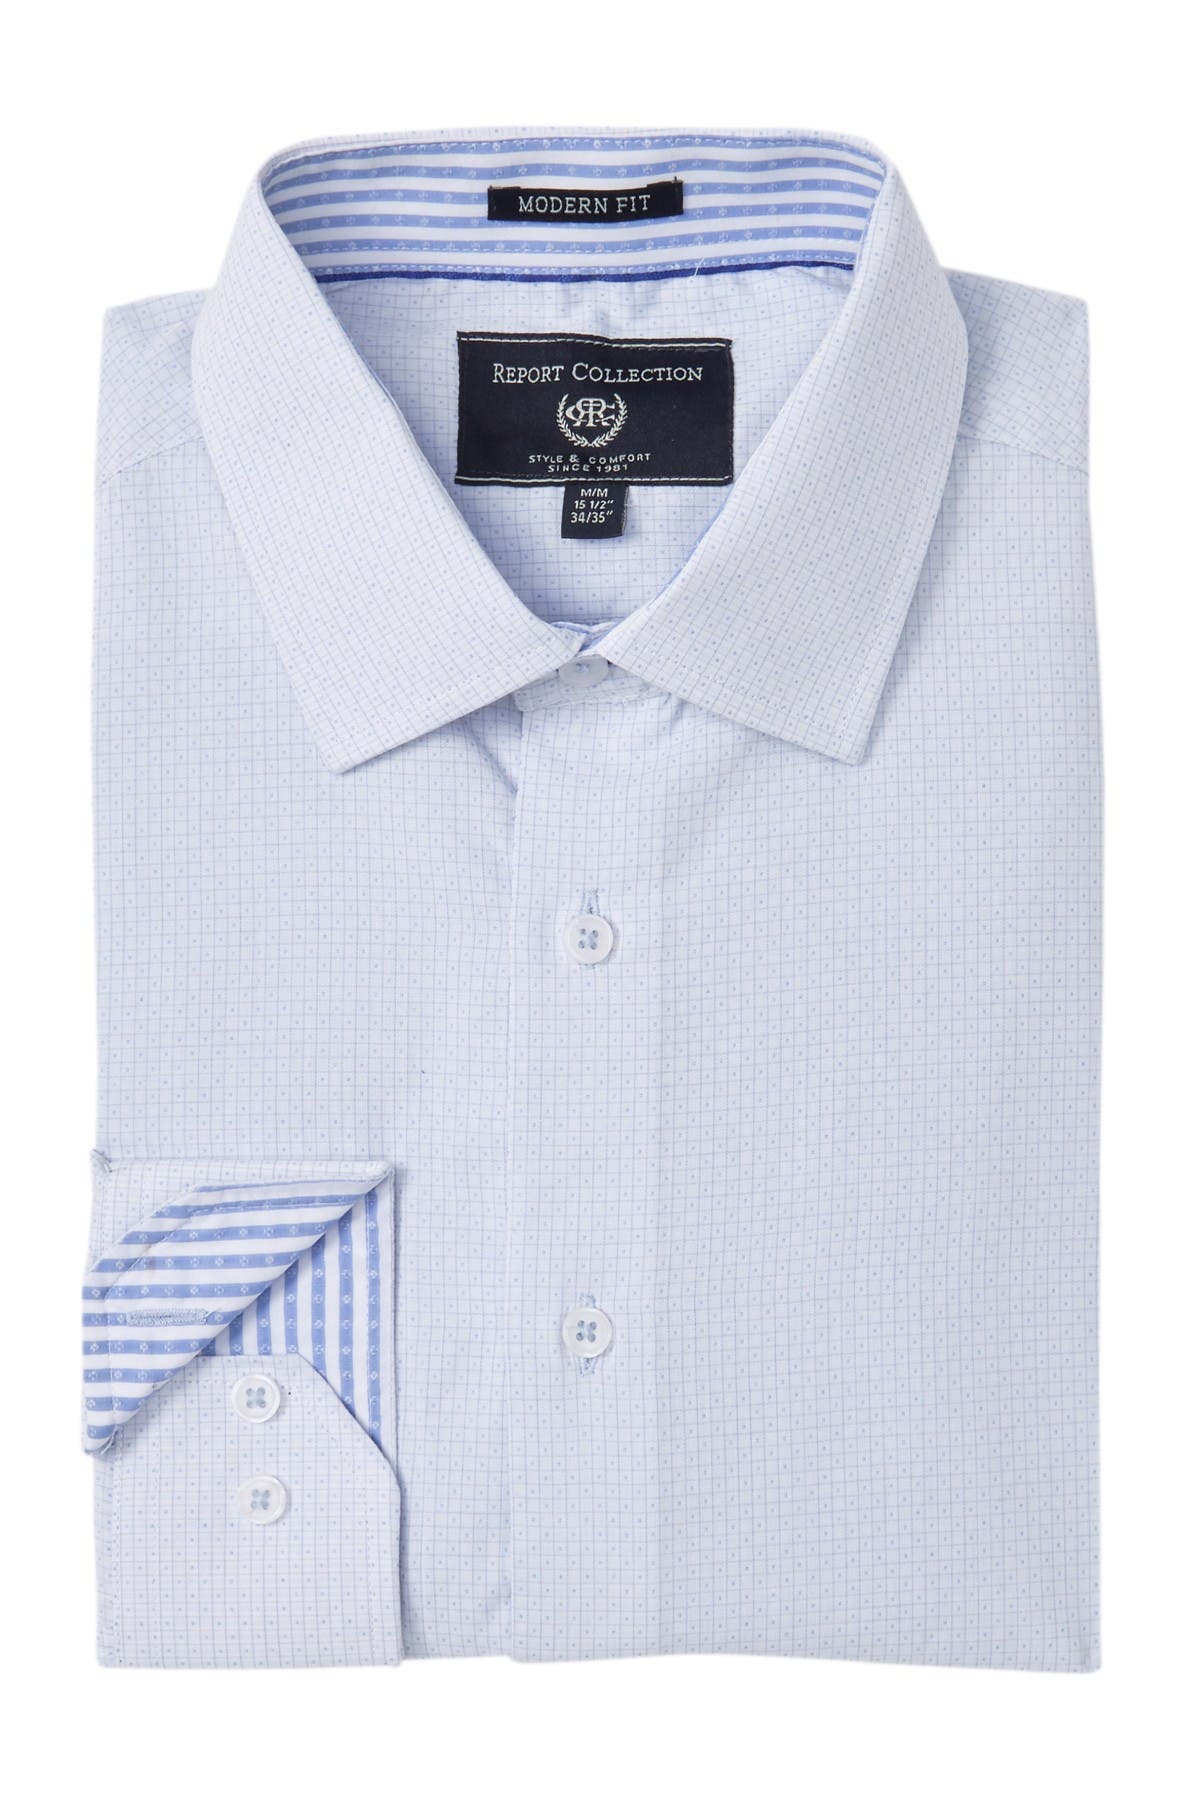 Image of Report Collection Modern Fit Dobby Dress Shirt